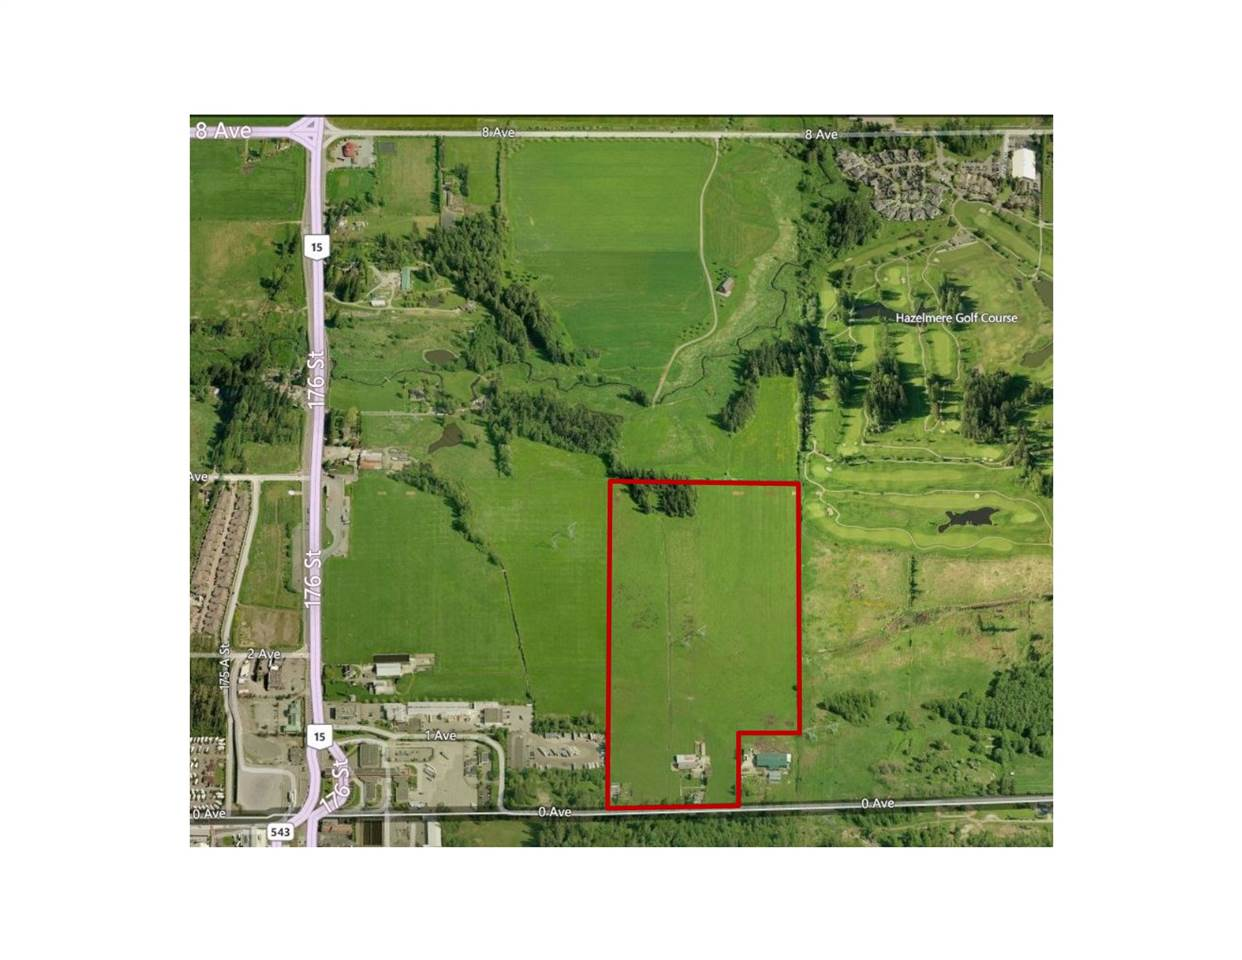 South Surrey opportunity with over 55 acres of agricultural land zoned A1 with two revenue producing homes and out-buildings in Hazelmere Valley. Great holding property in Hazelmere Valley. Great holding property in a developing area near a 136 lot subdivision. Cleared, flat farm land with irrigation. The Seller has completed both Stage 1 and 2 environmental studies. Drilled well and septic on site. BC Hydro Right of Way with overhead power lines. The property is located in South Surrey, very close to Pacific Highway border crossing on 175th and 0 Avenue. The parcel neighbours commercial property to the west and Hazelmere Golf course to the north east.